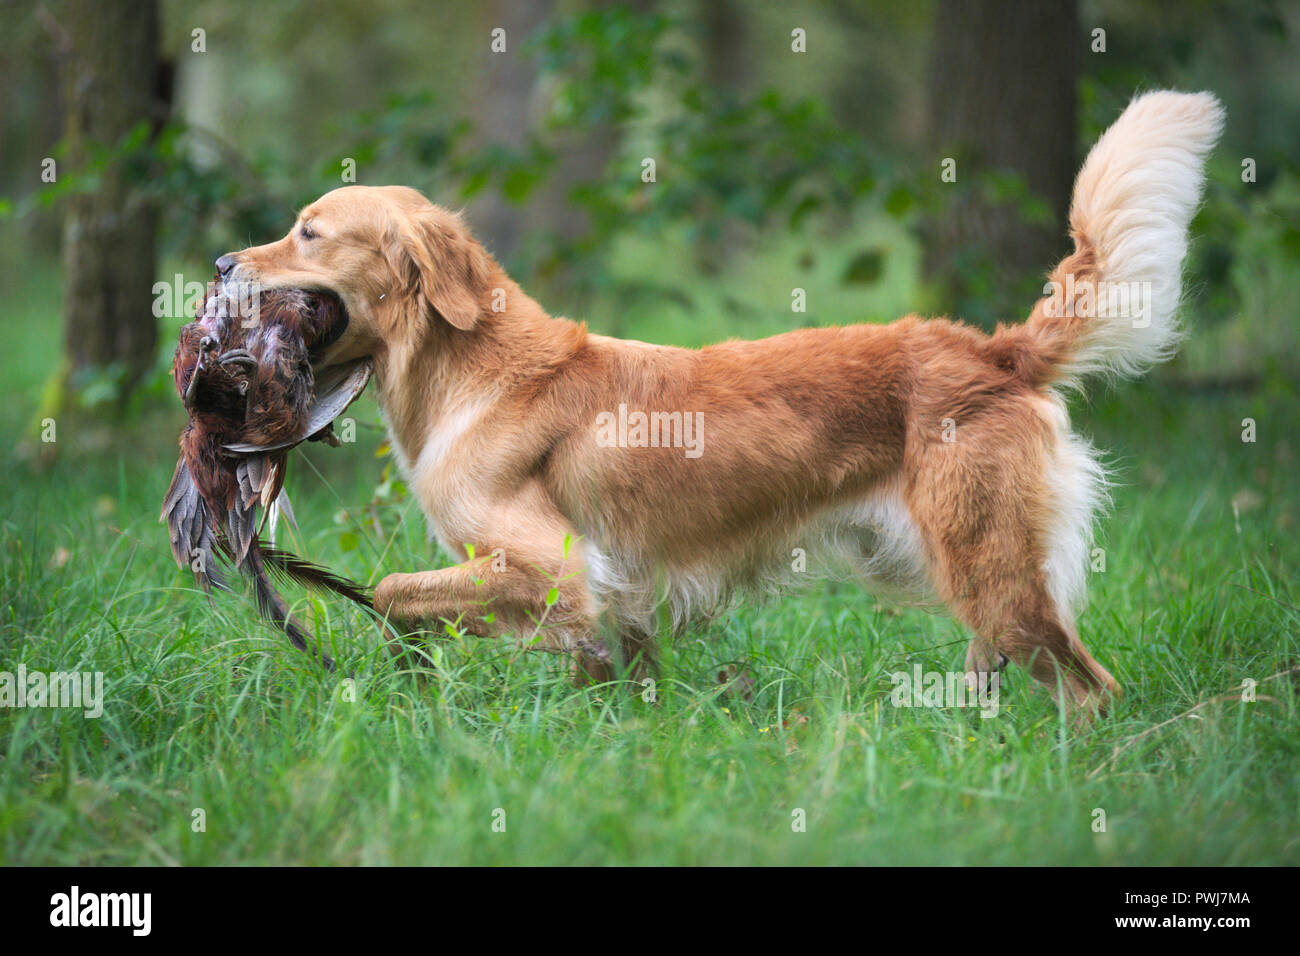 Profile photo of an elegant golden retriever retrieving a pheasant to his owner, tail up - Stock Image